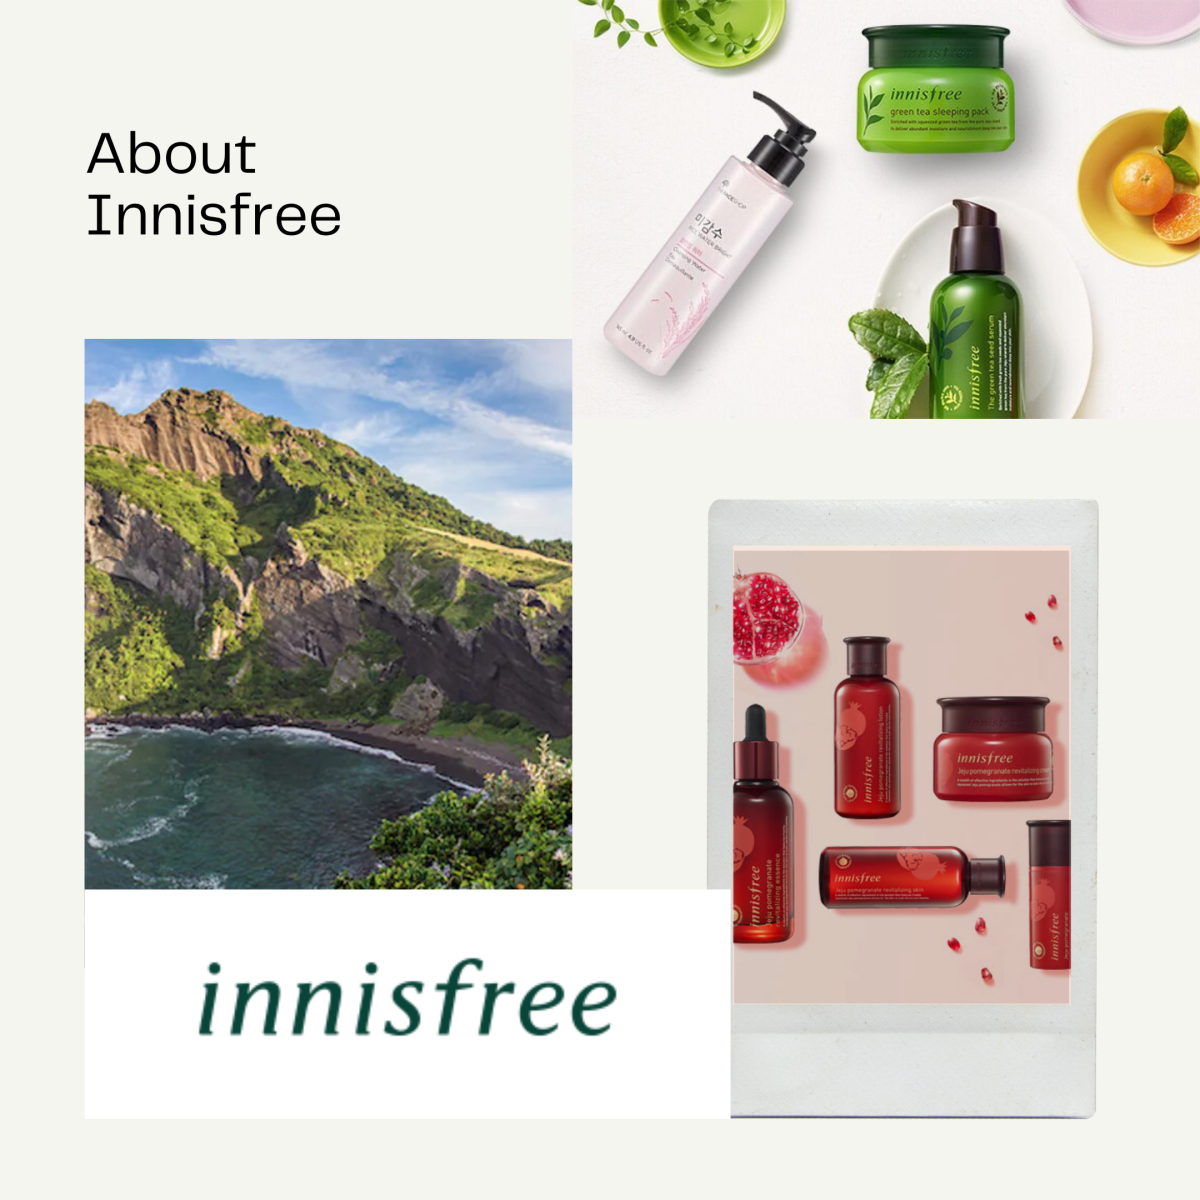 innisfree-olive-real-body-lotion-review